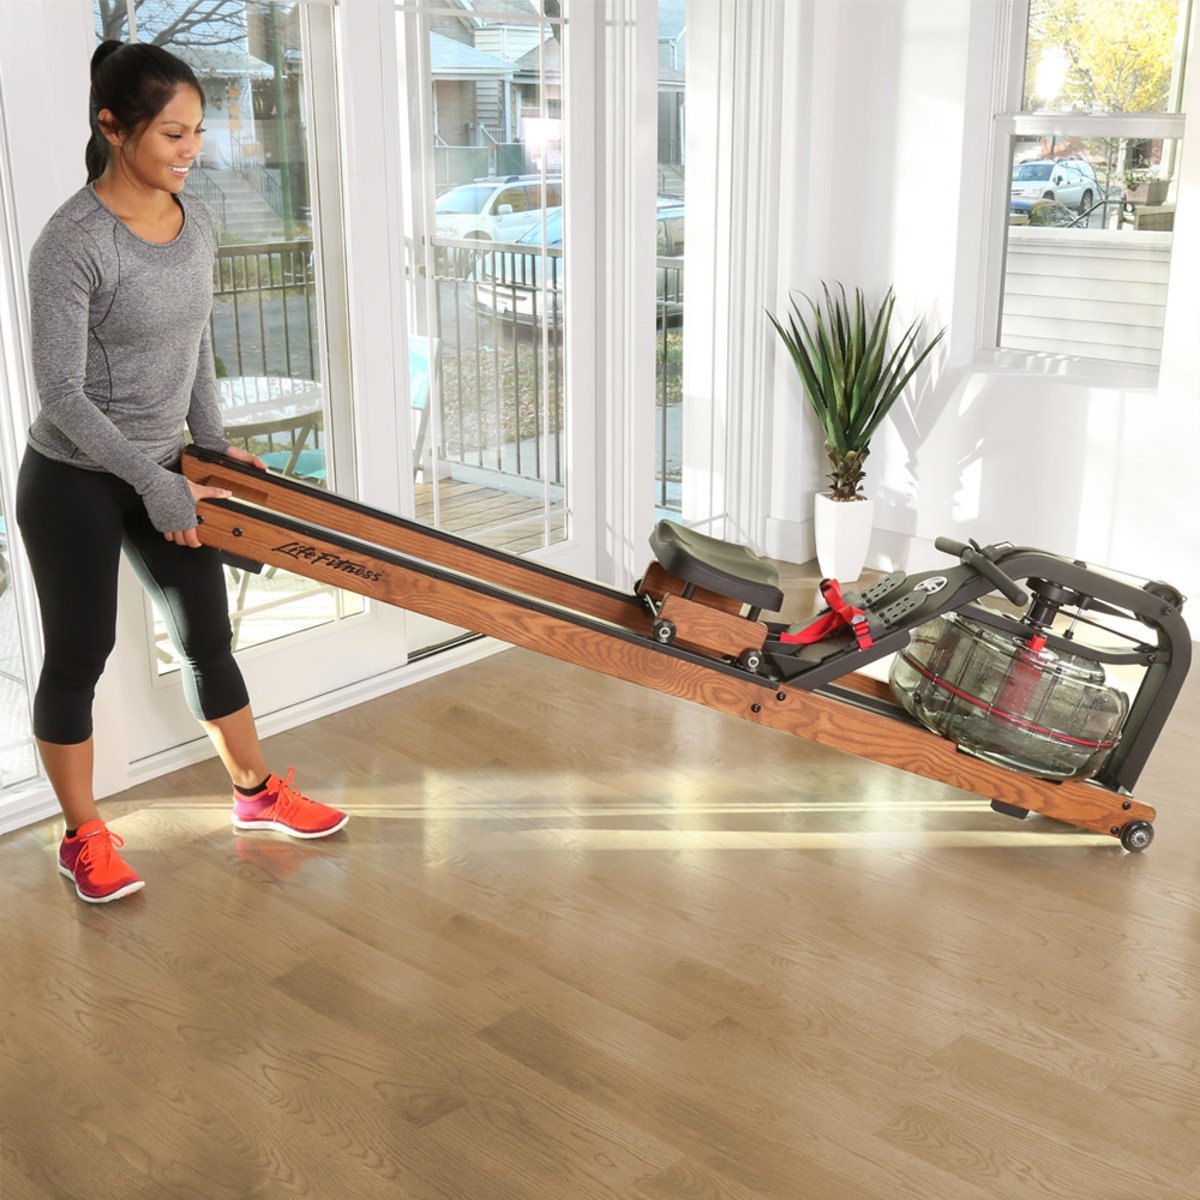 Szeneriebild Waterrower